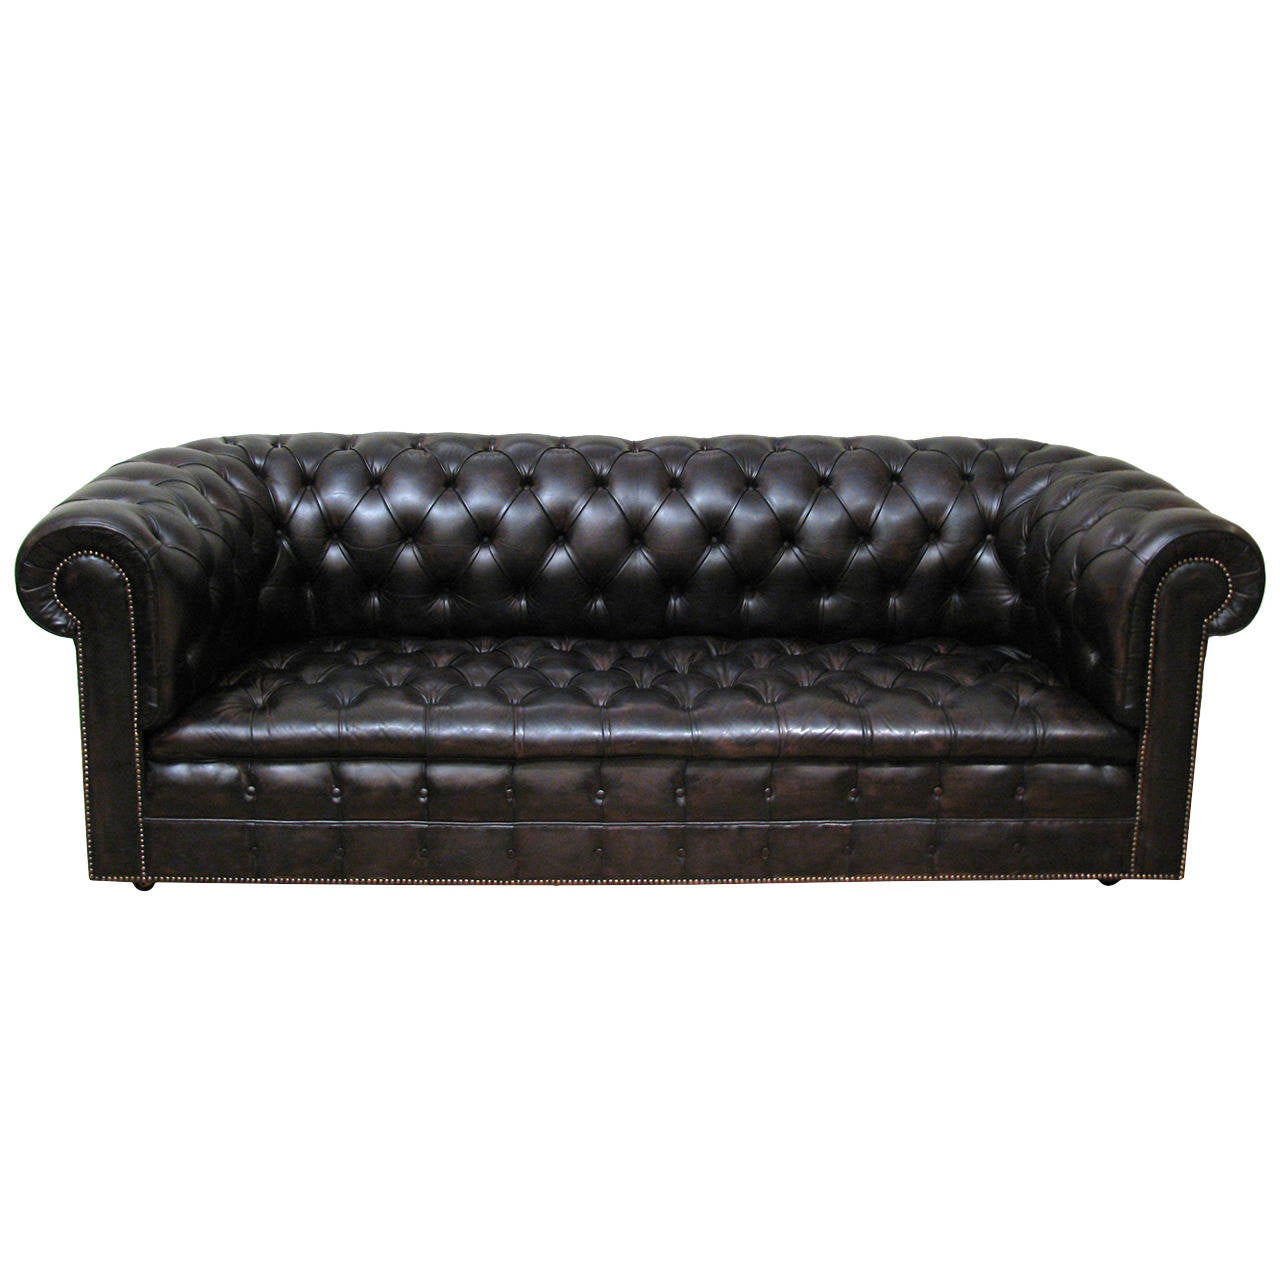 English chesterfield tufted leather sofa at 1stdibs for Tufted leather sleeper sofa